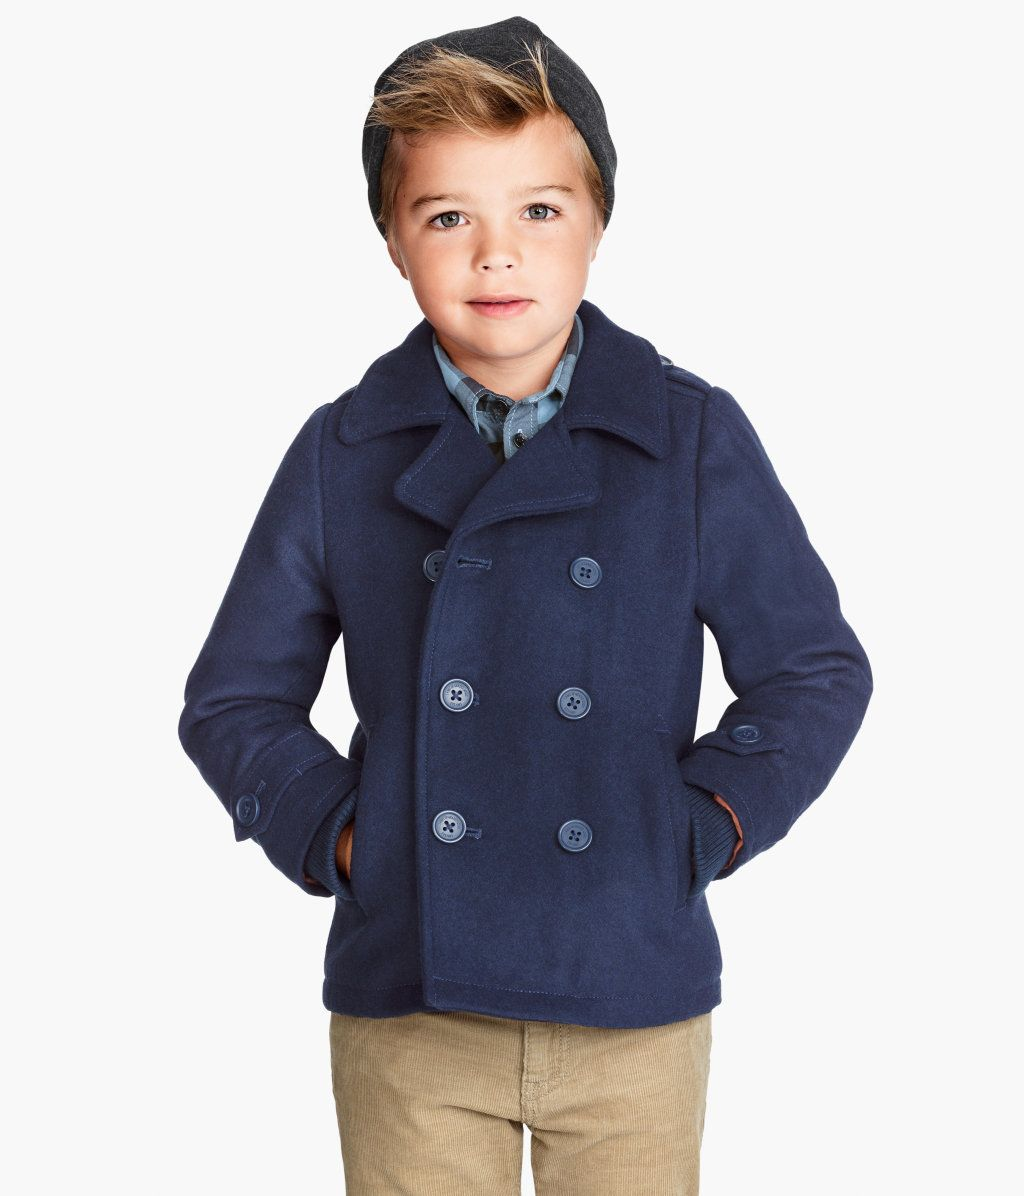 Pea Coat with Flannel Shirt | Little Boys | H&M | Little Ruler ...